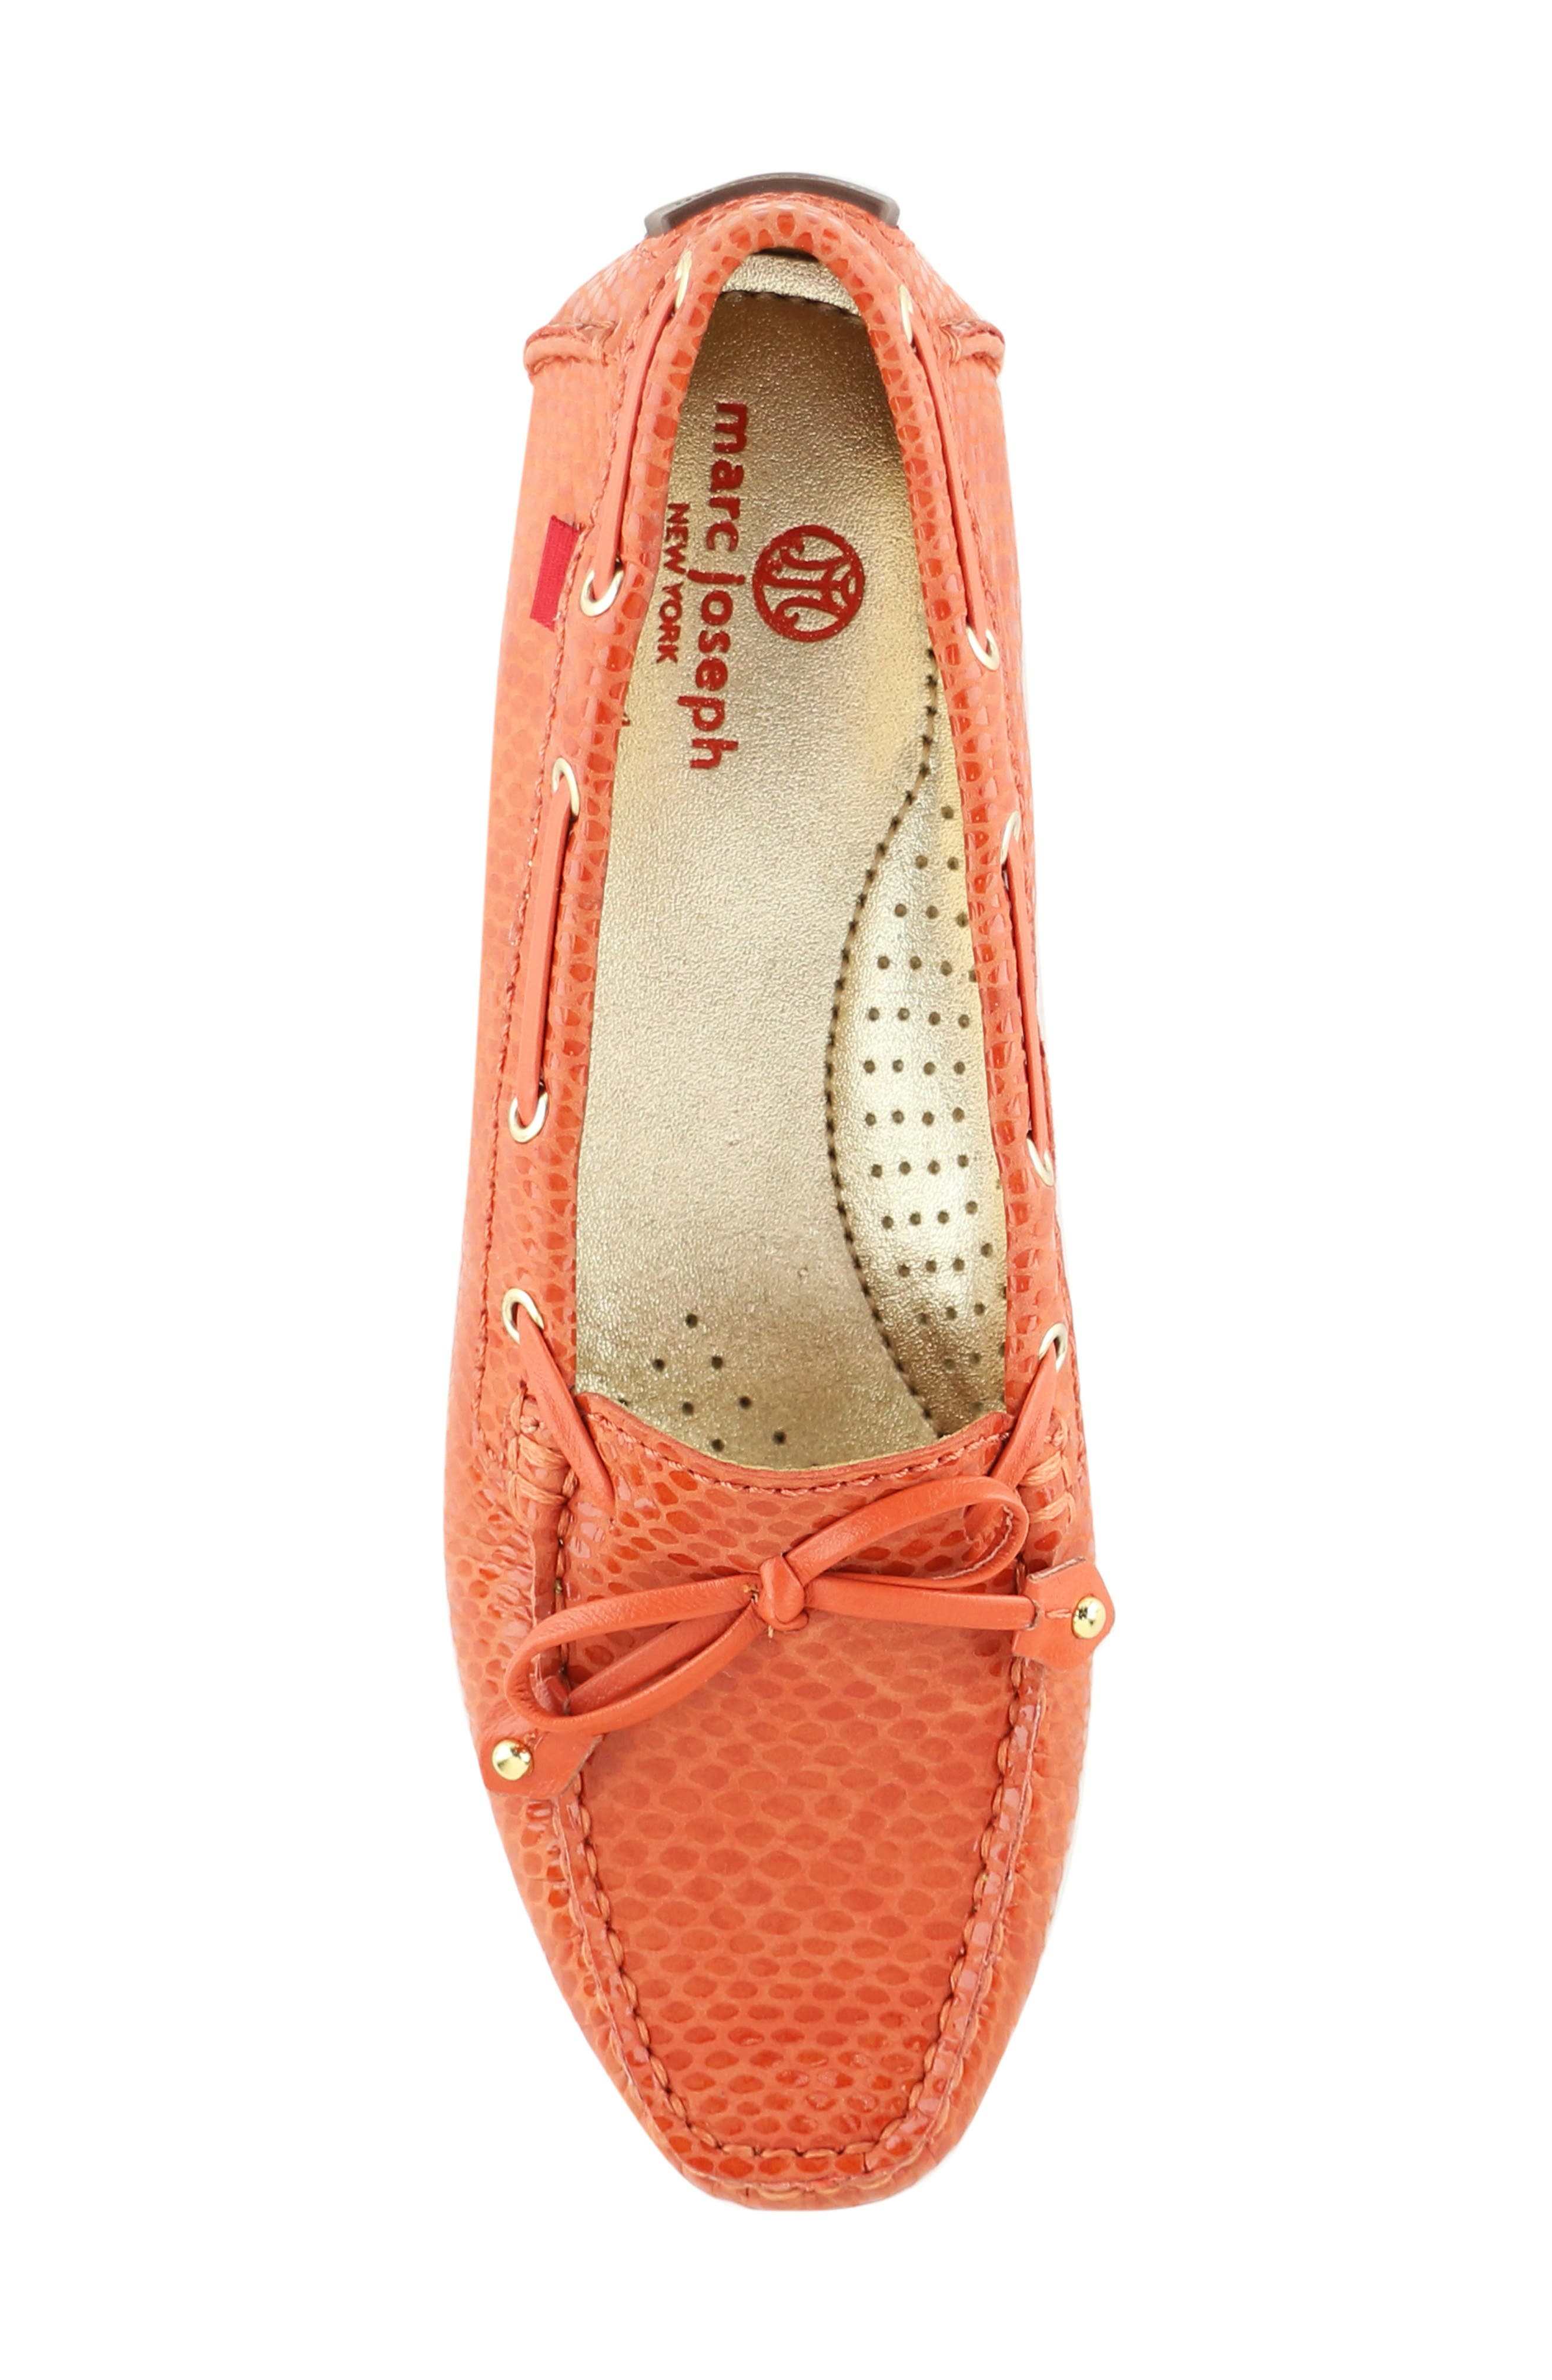 MARC JOSEPH NEW YORK, 'Cypress Hill' Loafer, Alternate thumbnail 5, color, CORAL SNAKE PRINT LEATHER